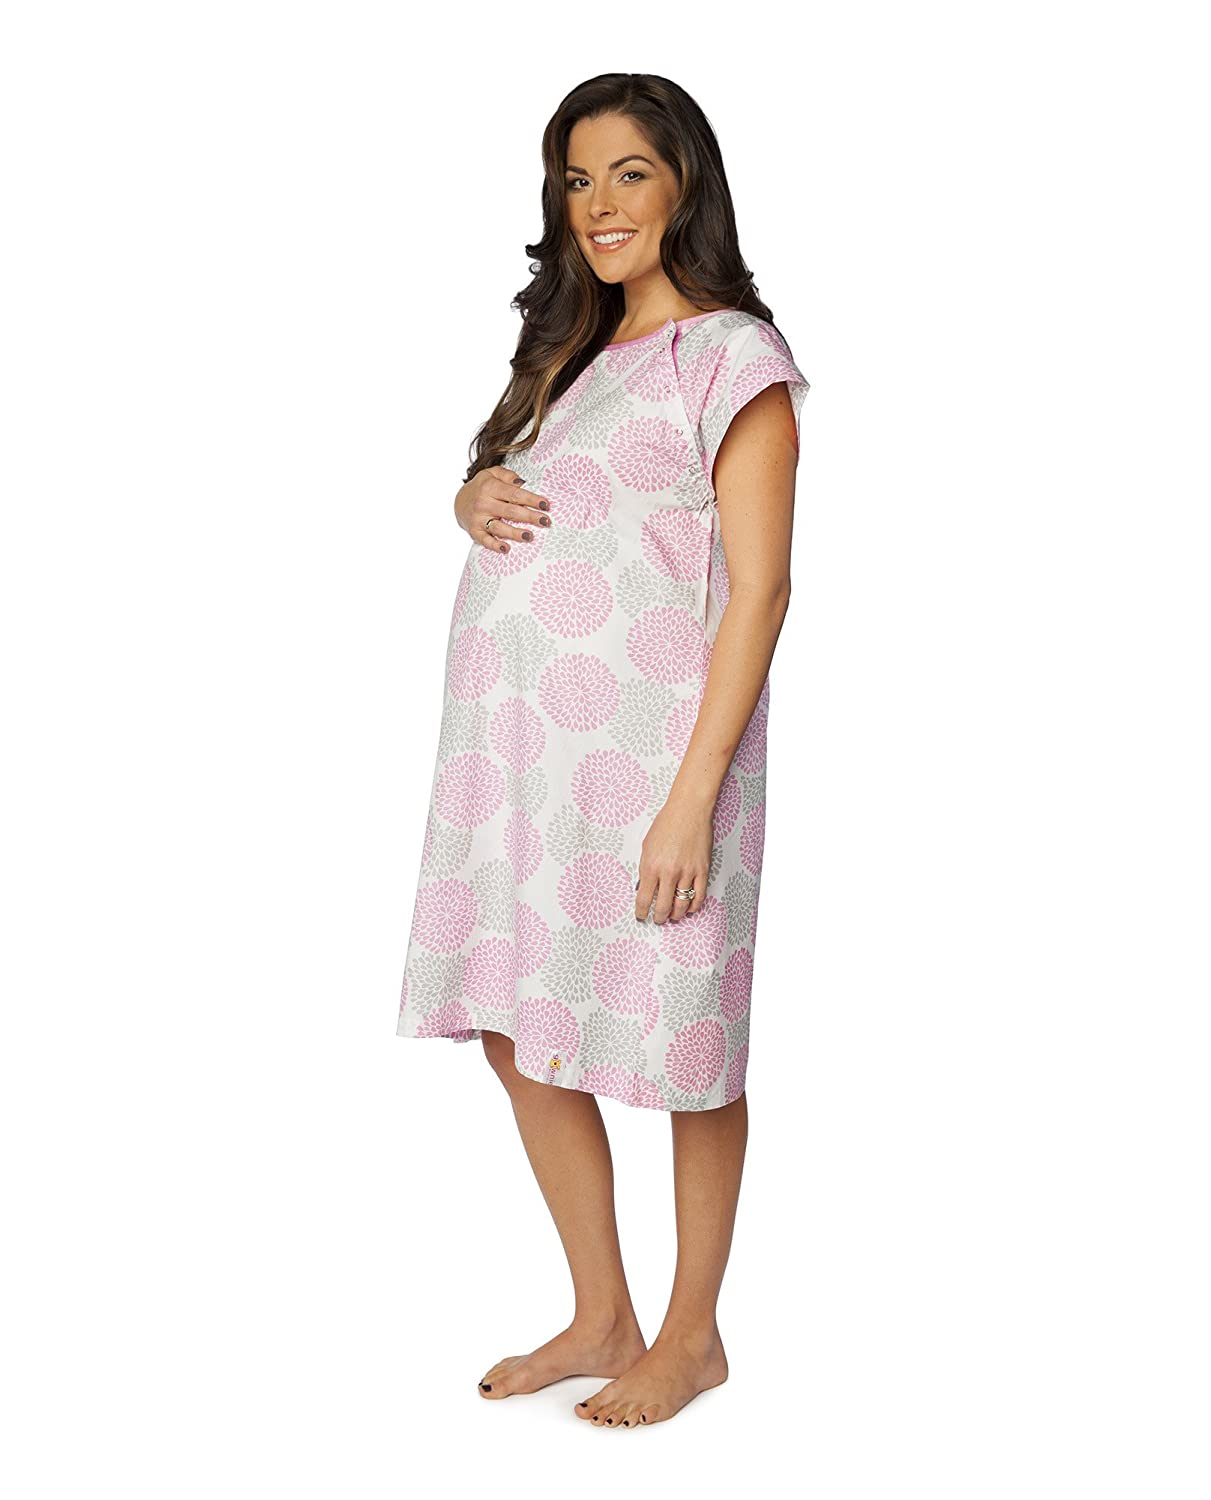 Amazon.com: 100% Cotton Hospital Gown / Maternity Wear / Labor Gown ...